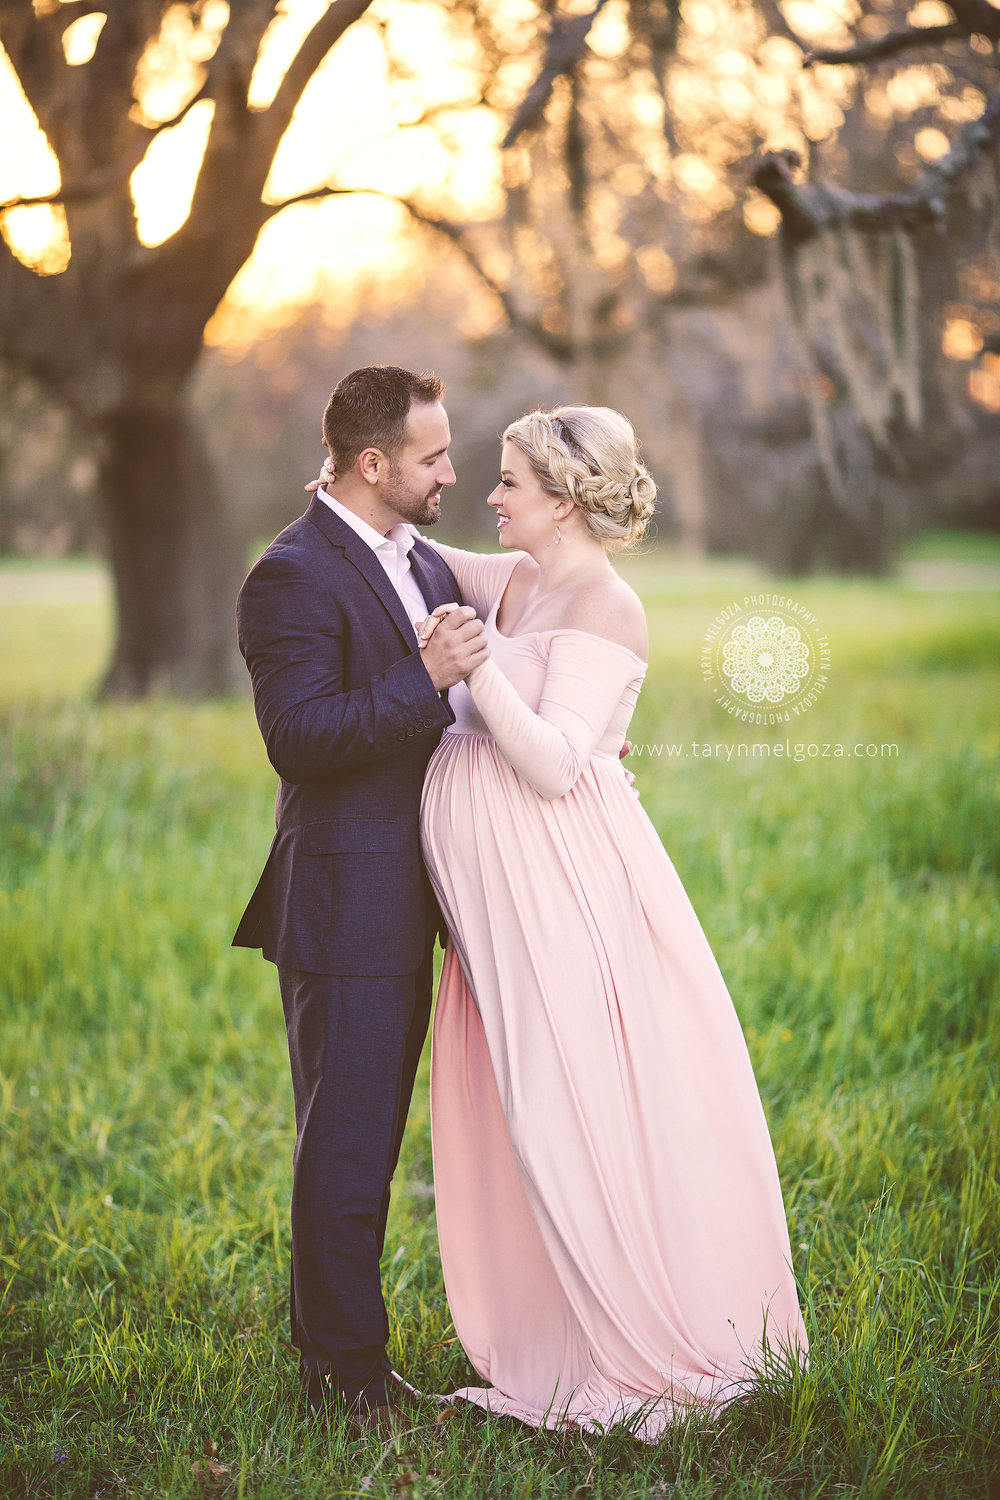 Taryn Melgoza Photography | Local Small Business Feature